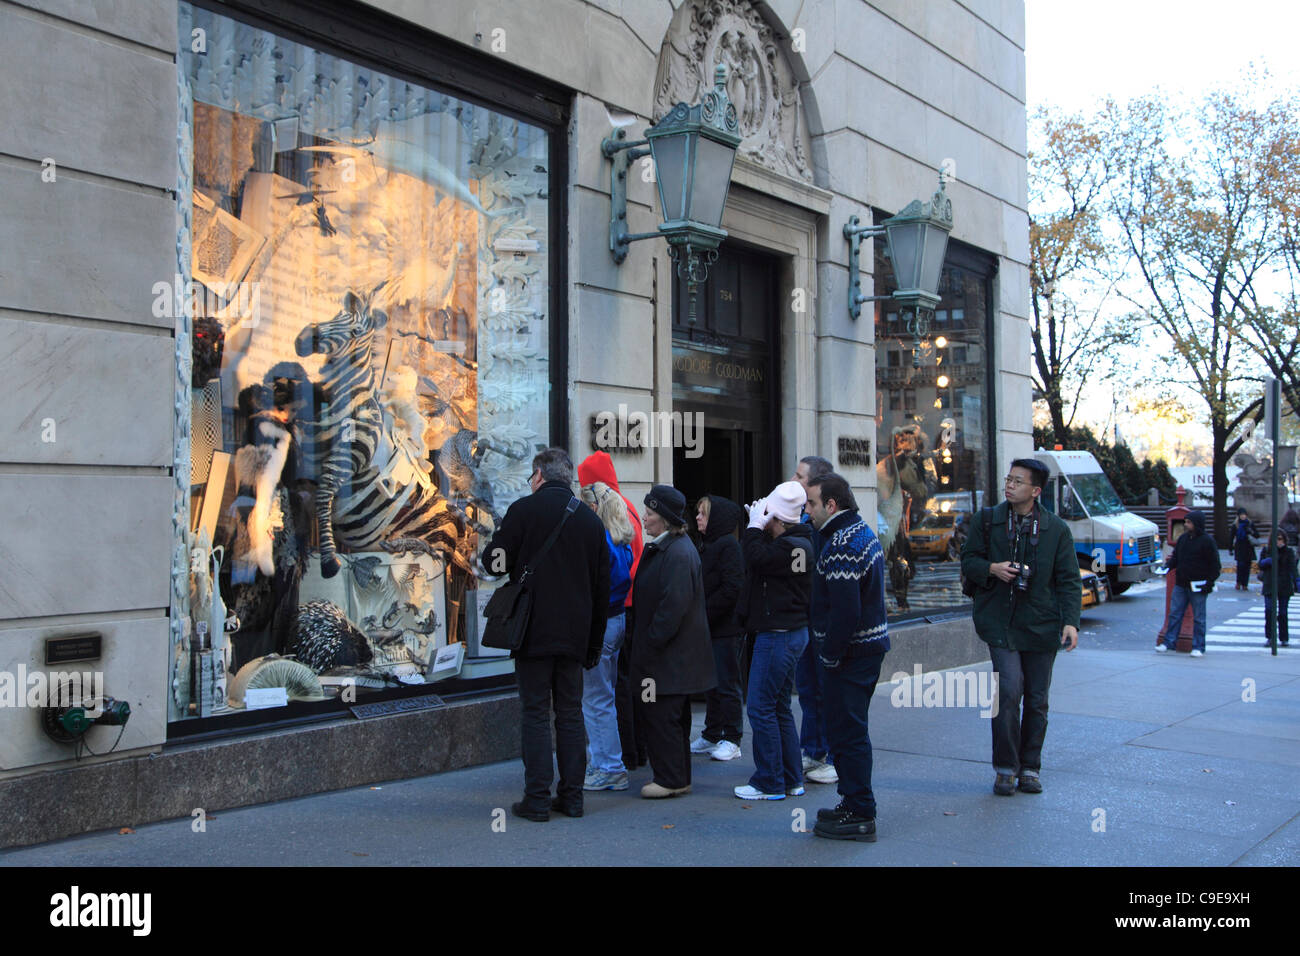 Windows of Bergdorf Goodman department store decorated for ...